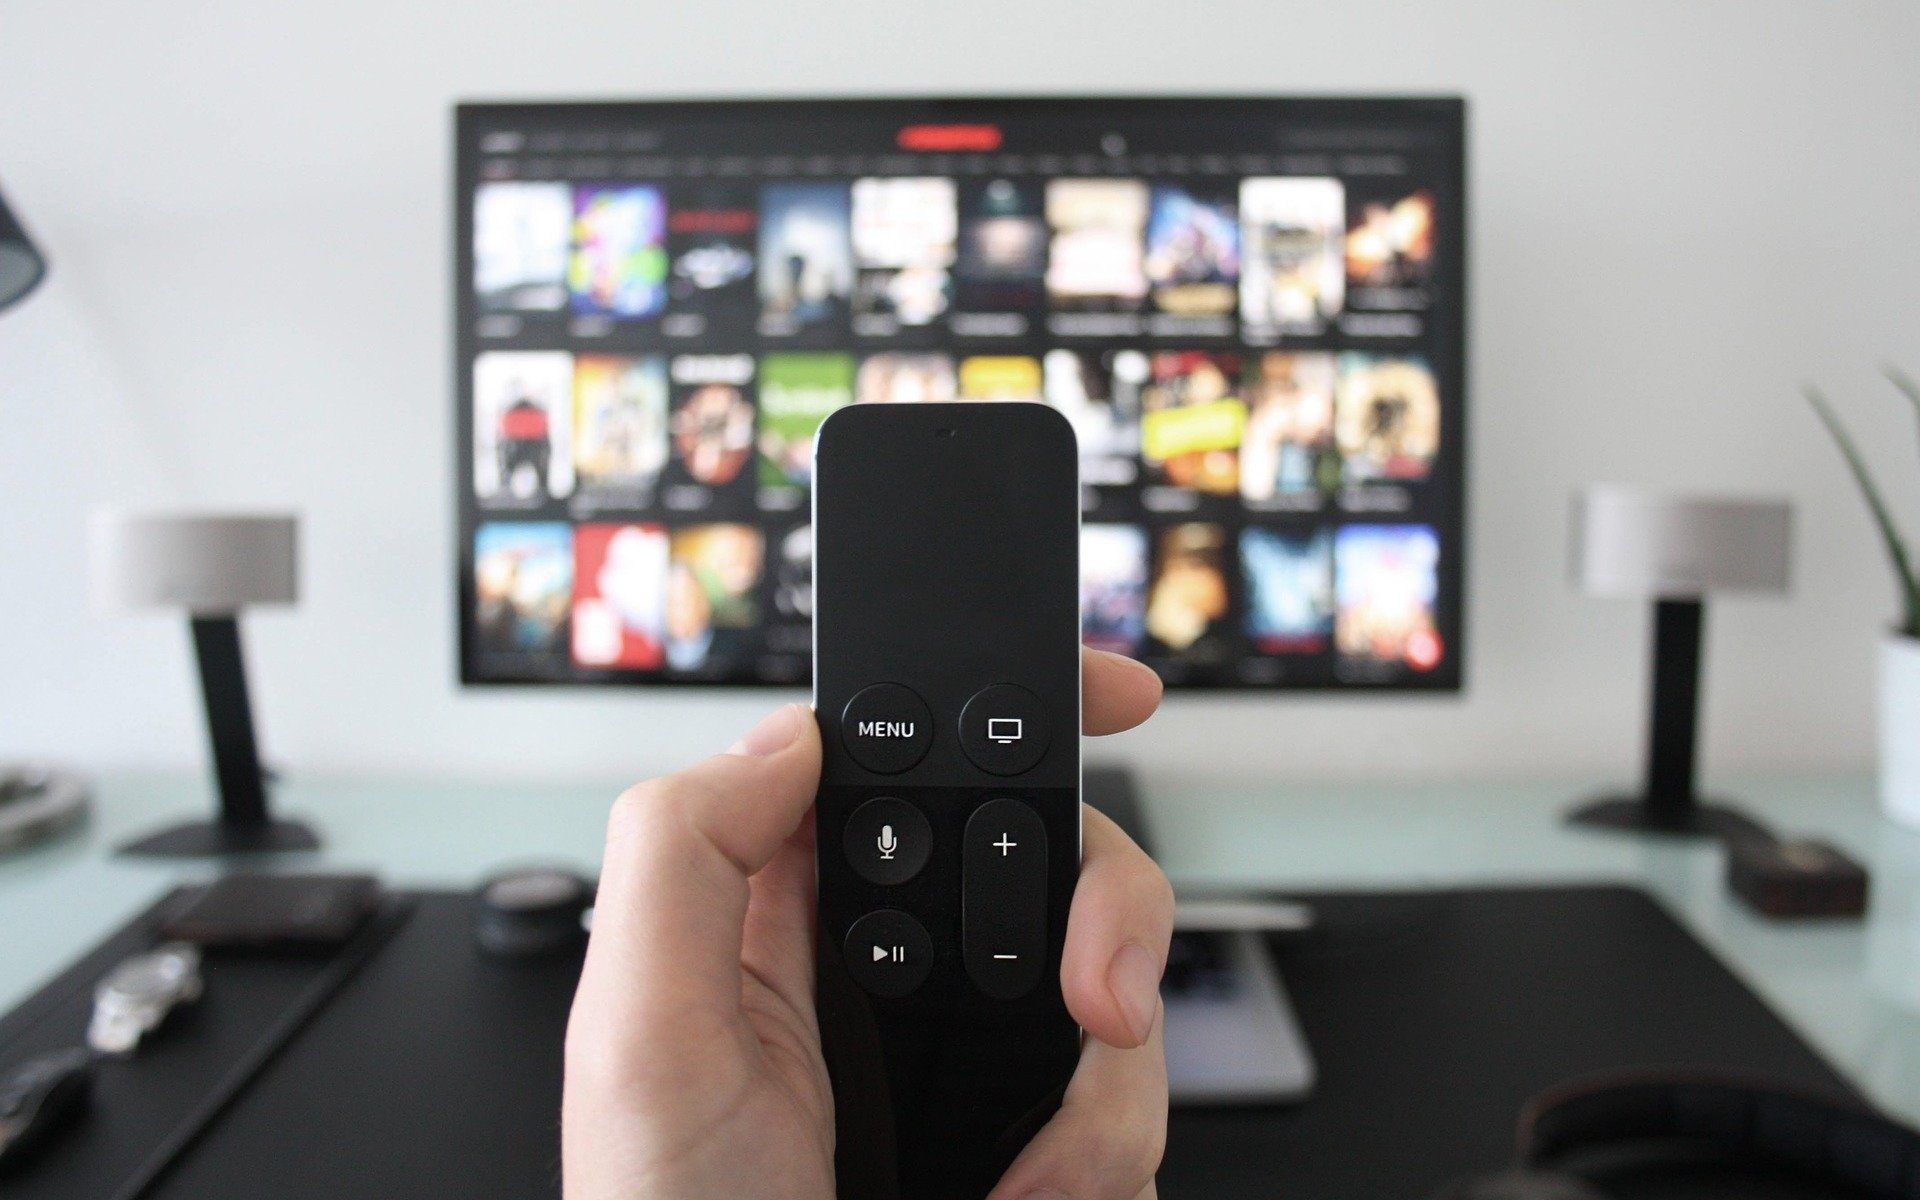 Person holding a TV remote in their hand. Behind that is a TV with the Netflix home screen on it.